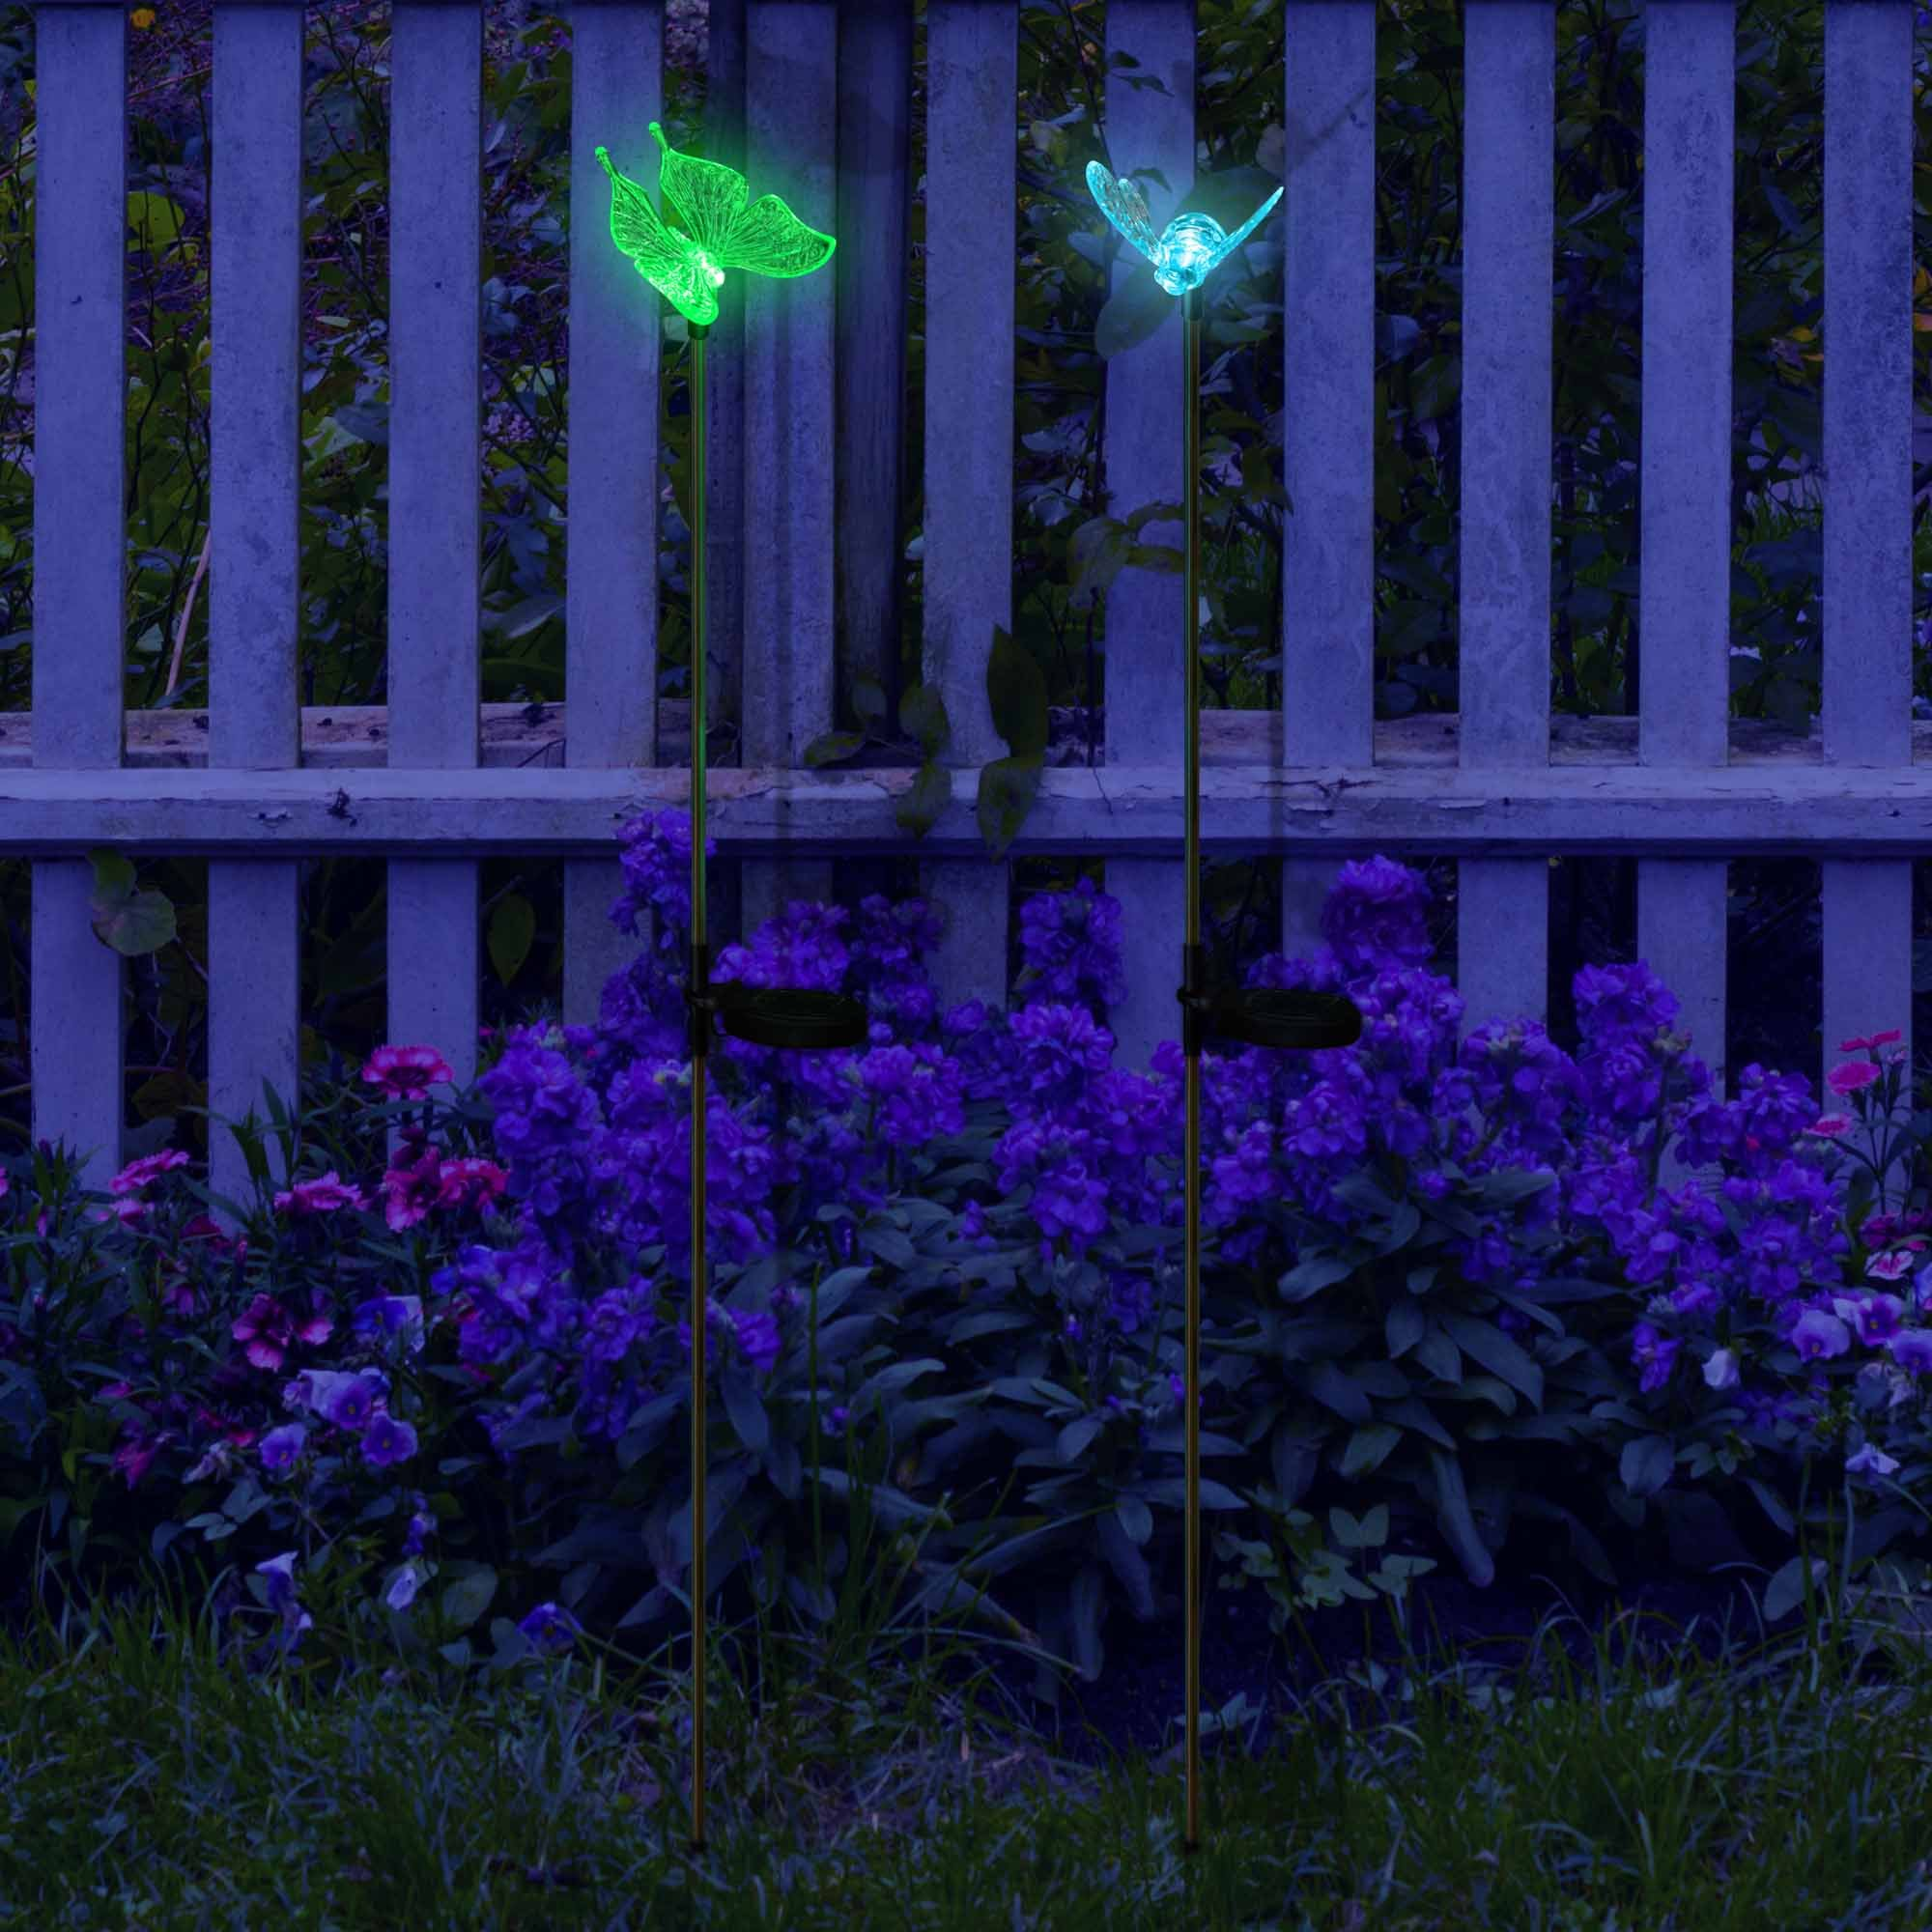 SolarDuke Solar Garden Outdoor Stake Lights Butterfly and Bumble Bee Garden Lighting Path Decoration Color Changing Patio Lawn Backyard Decor by SolarDuke (Image #7)